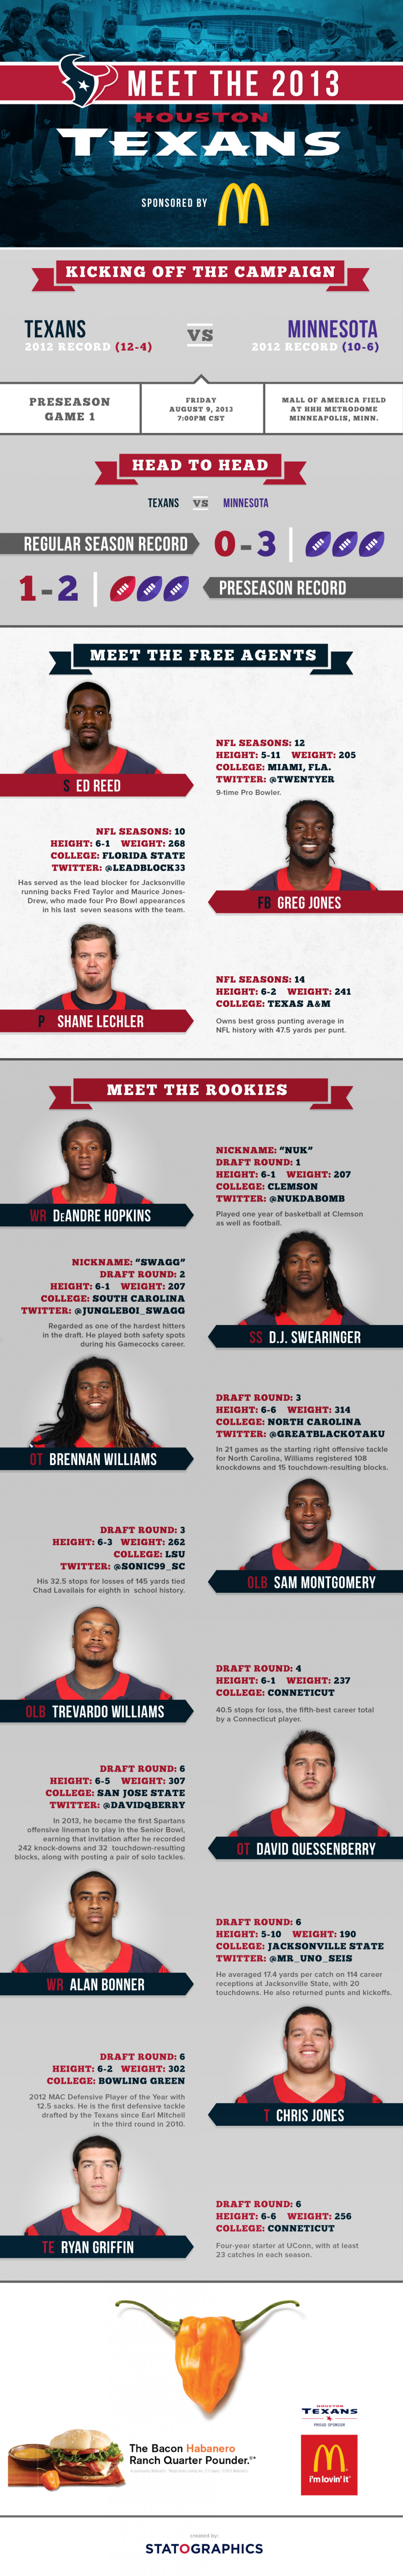 Houston Texans Preseason Game 1 Infographic